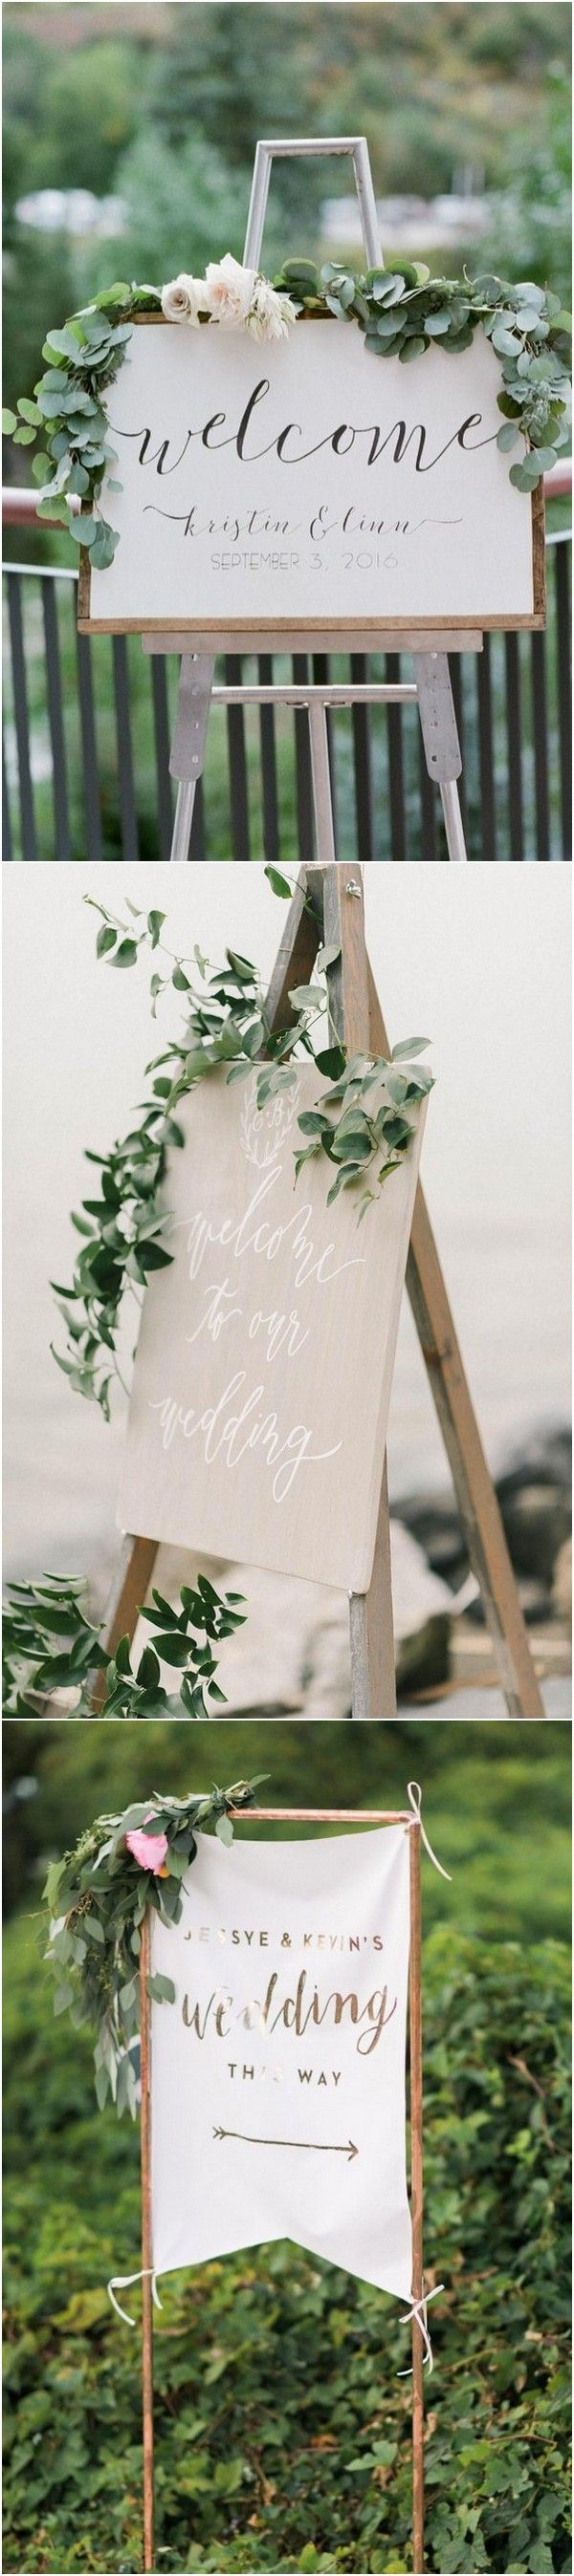 Trending greenery chic wedding signs #weddingideas #weddingsigns #wedding